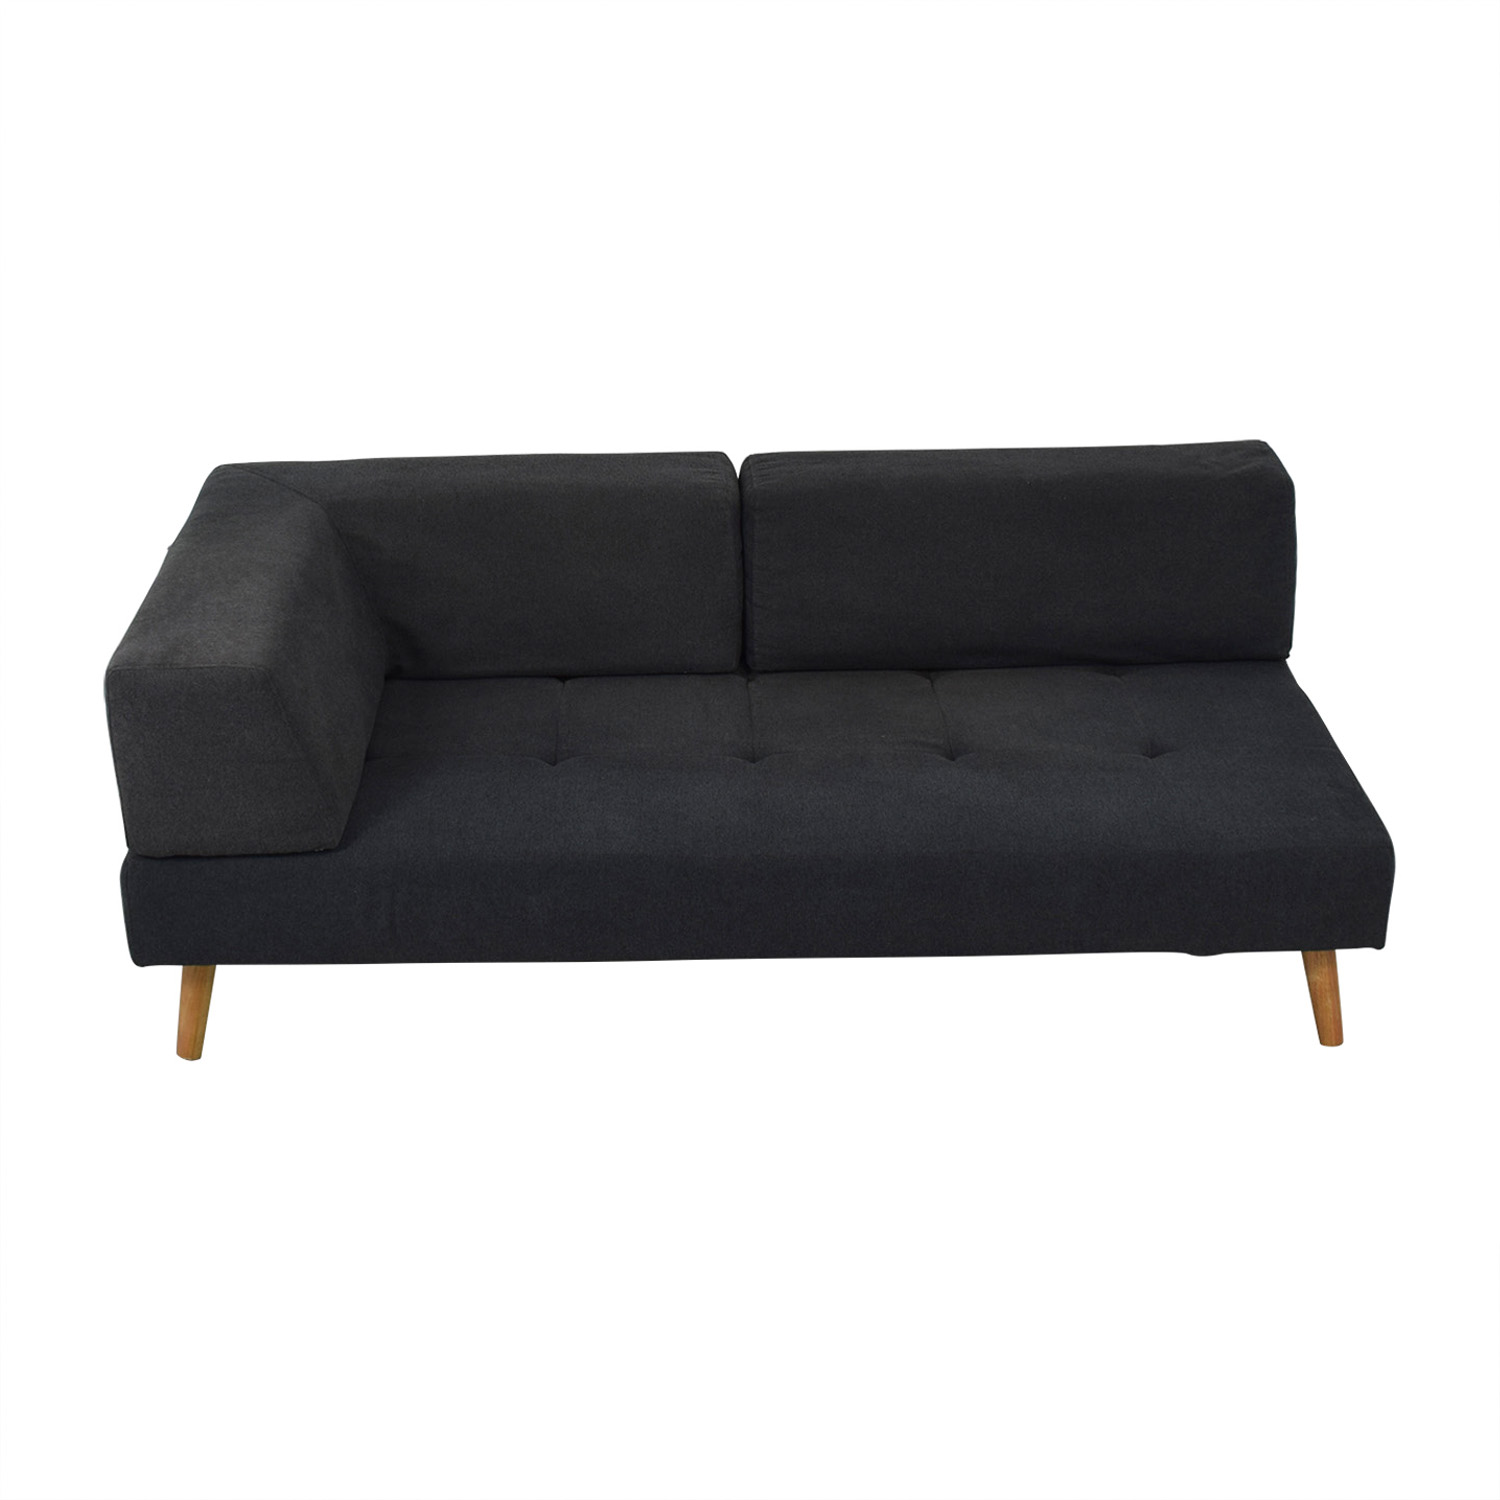 Cnouch Schlafsofas Retro Sofa For Sale Architectural Design